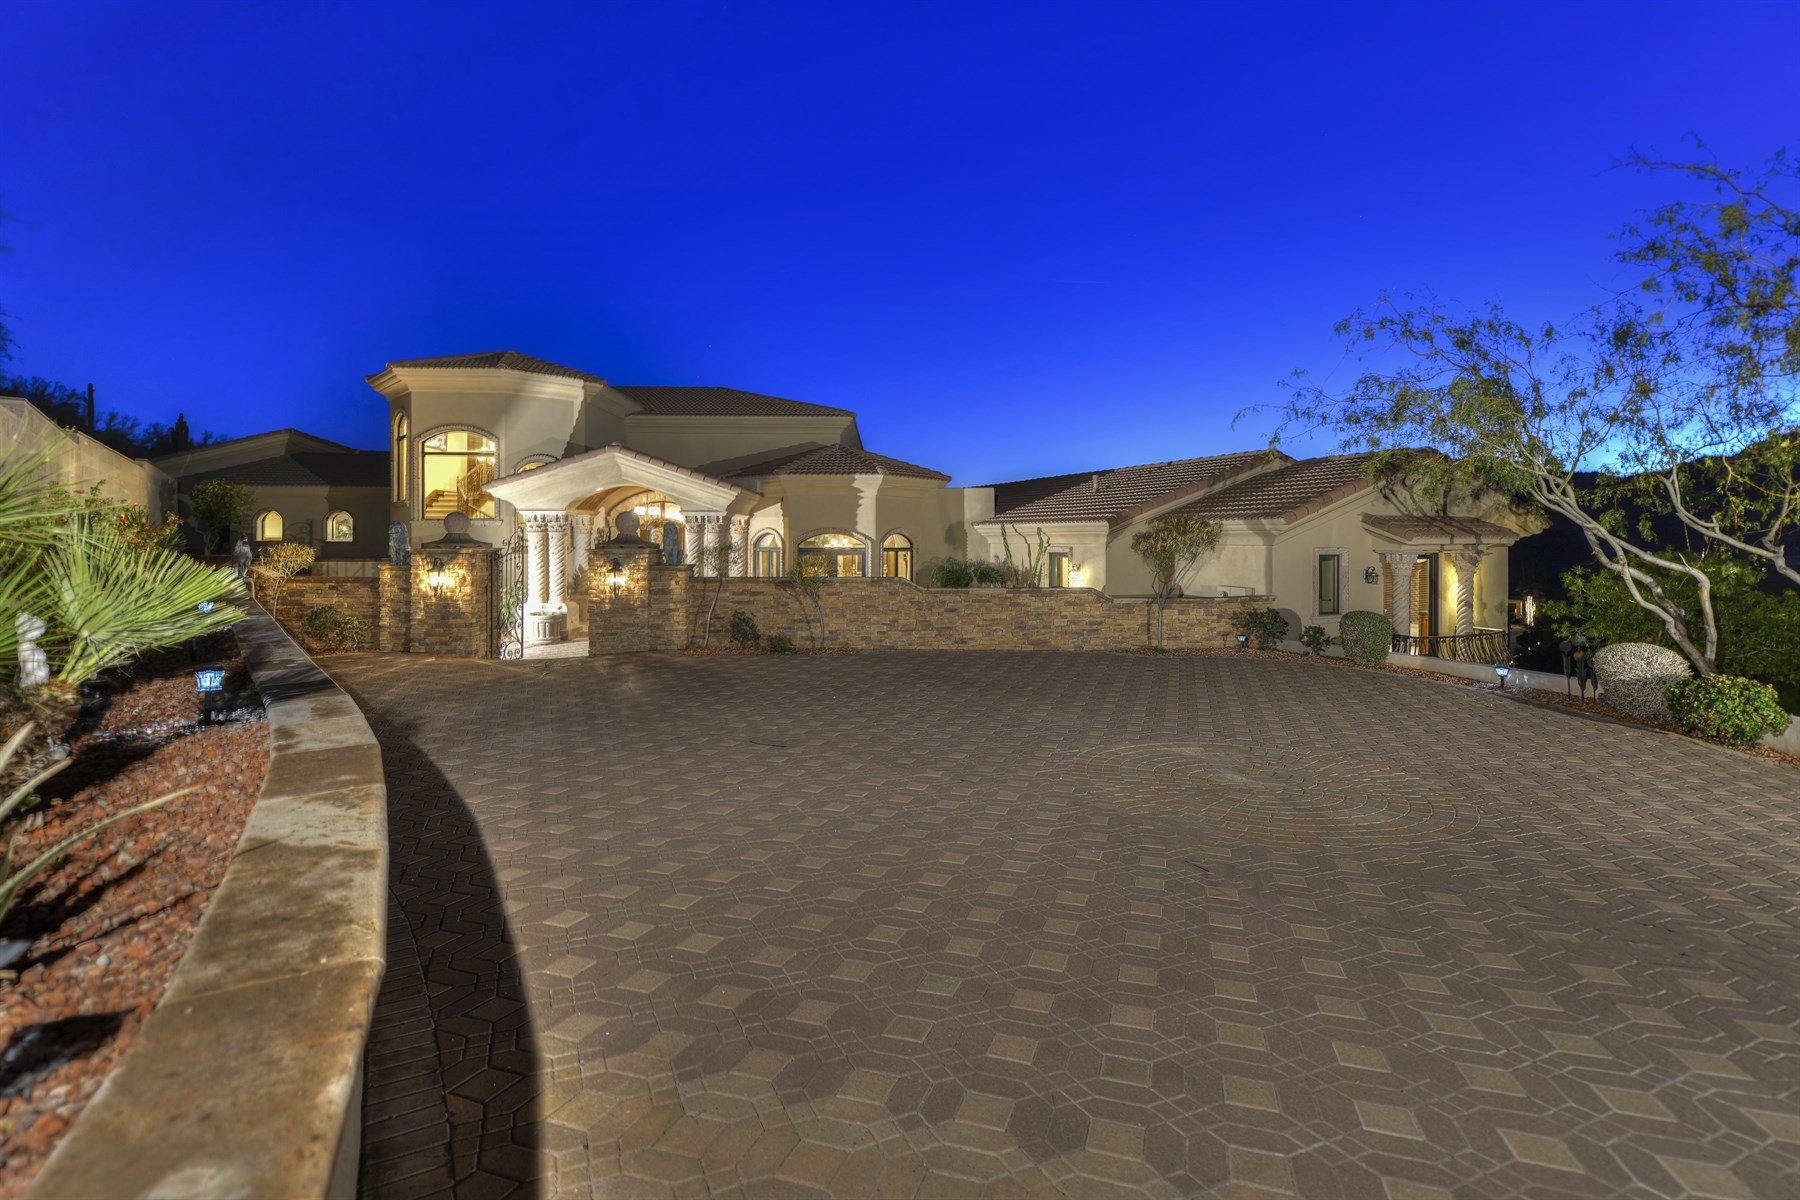 Moradia para Venda às Beautiful European-inspired estate 7024 N Longlook Rd Paradise Valley, Arizona, 85253 Estados Unidos